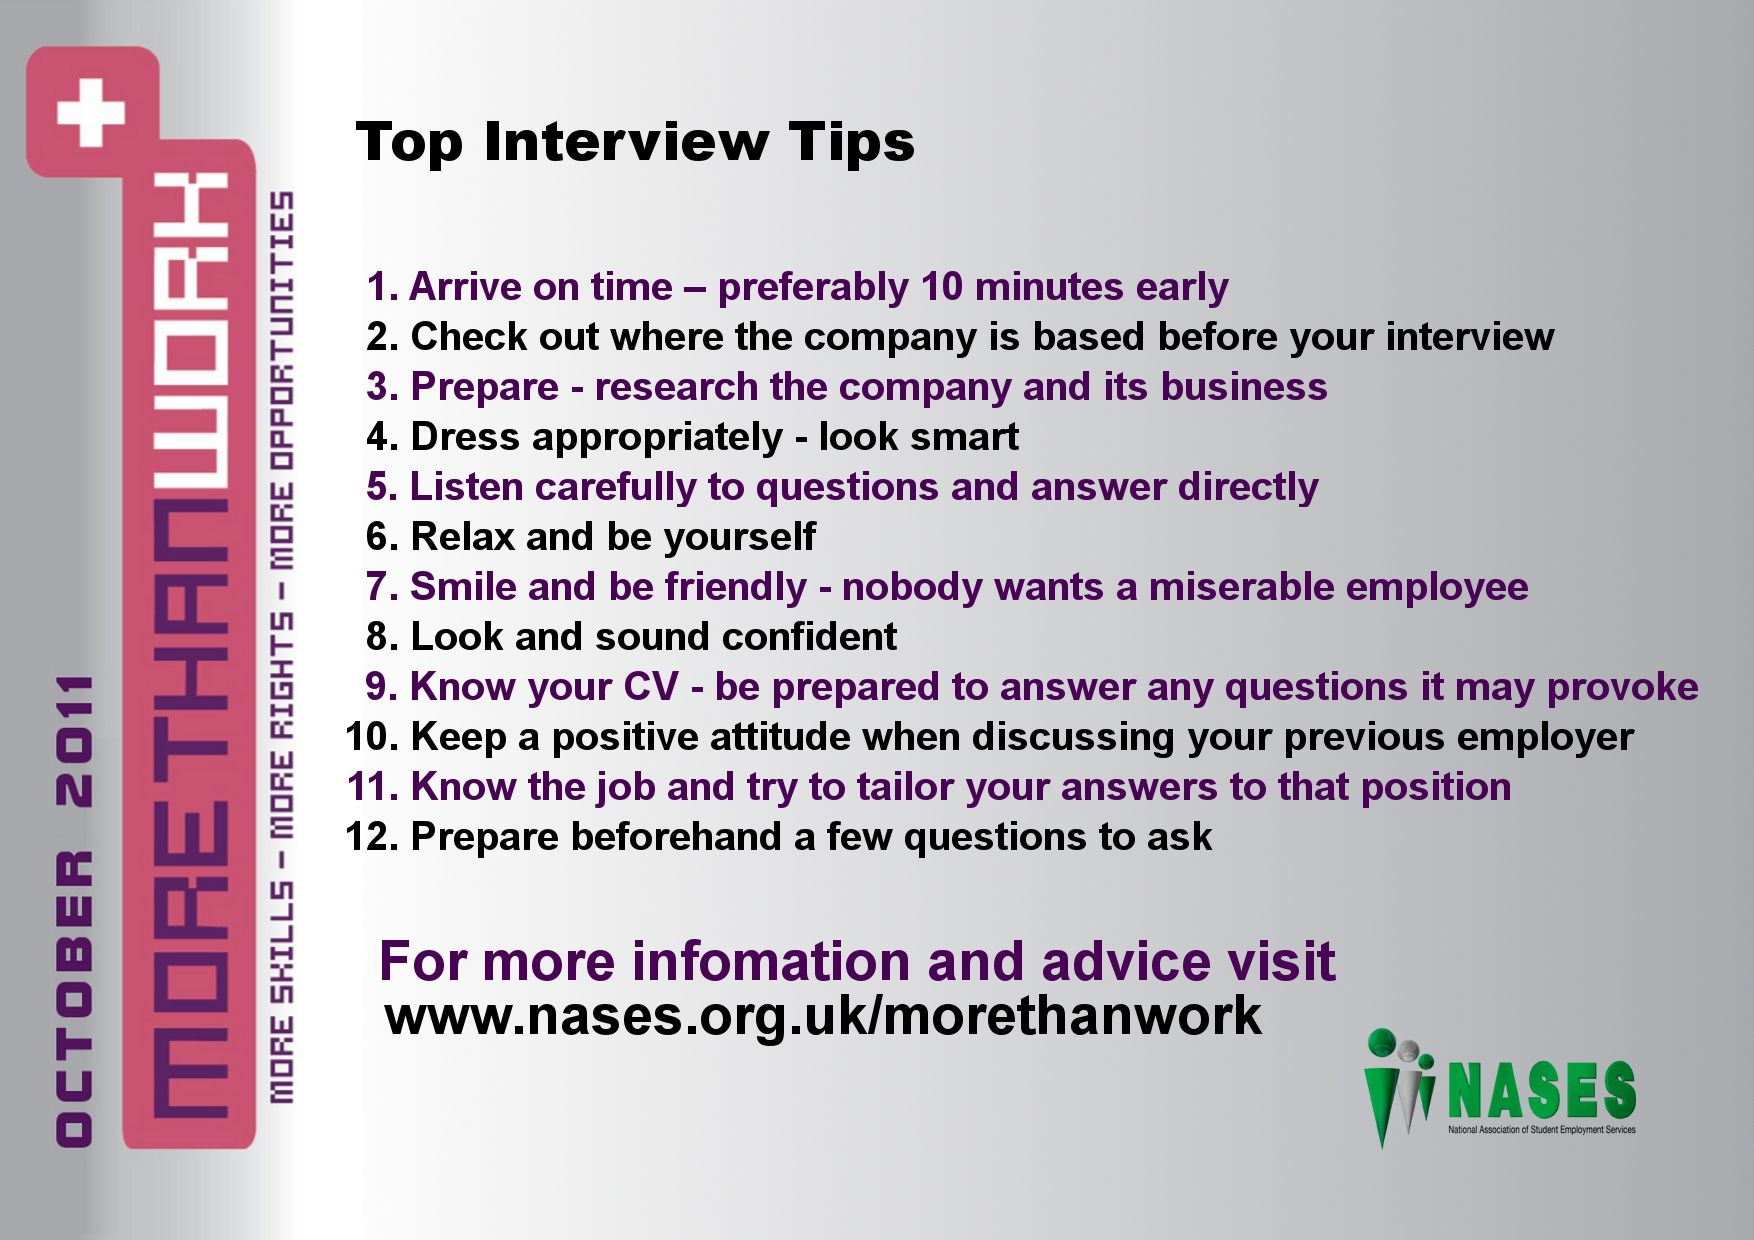 best images about interviewing tips interview 17 best images about interviewing tips interview define success and beauty tips